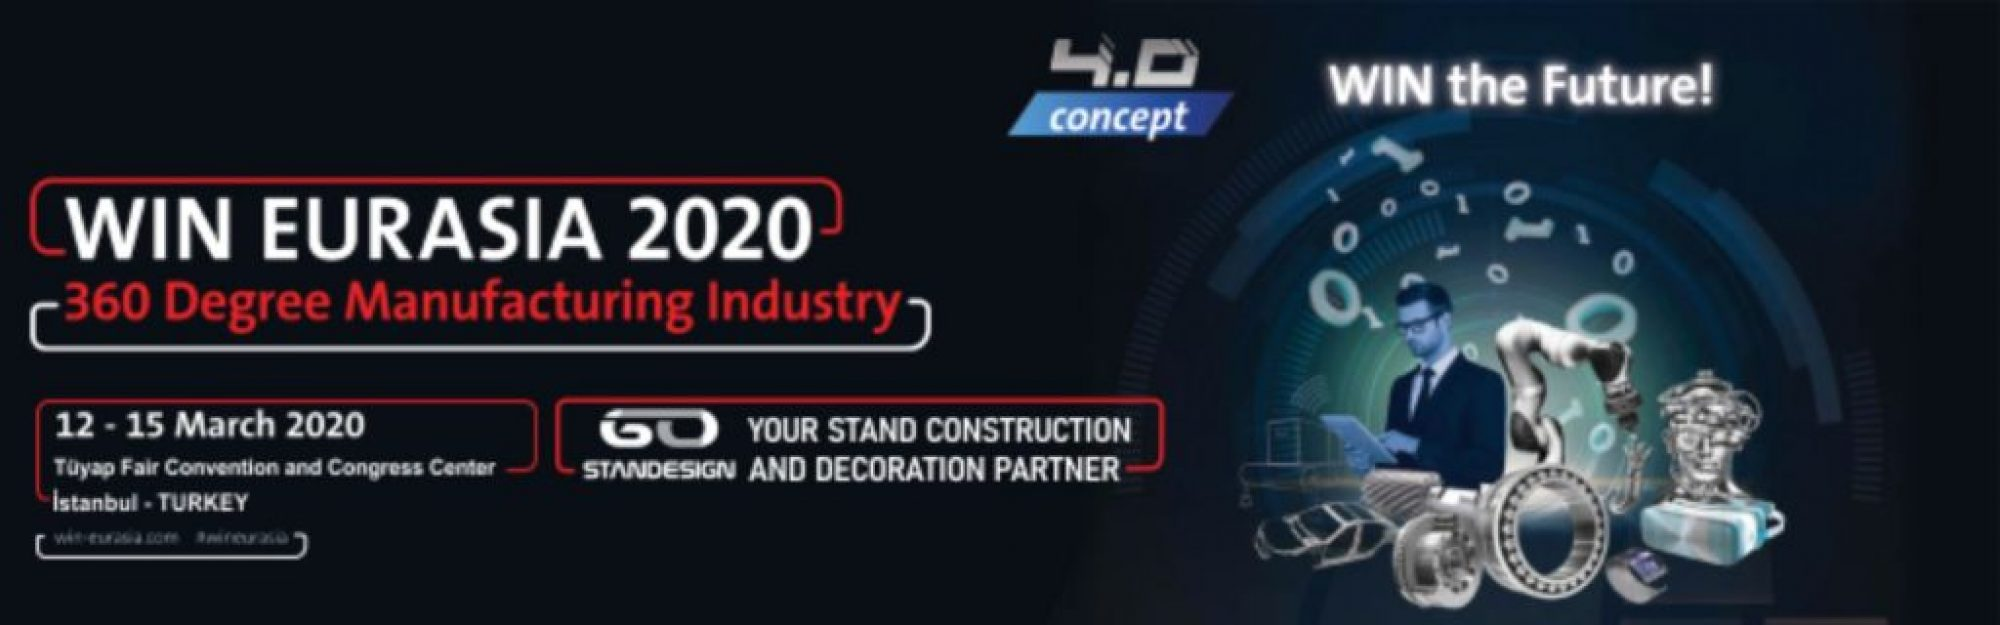 WIN EURASIA 2020 Metalworking Exhibition Turkey